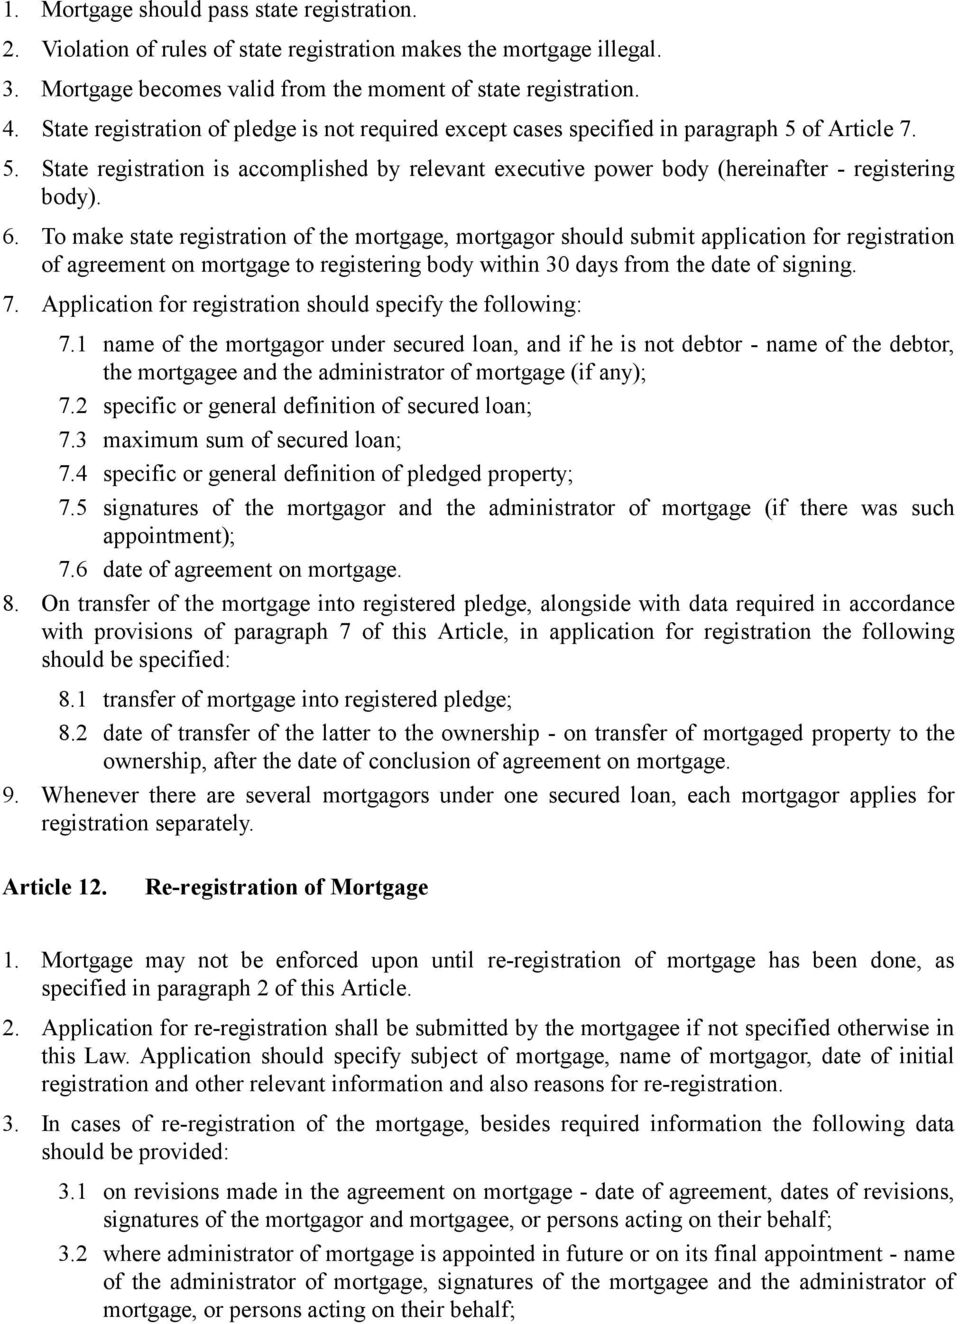 6. To make state registration of the mortgage, mortgagor should submit application for registration of agreement on mortgage to registering body within 30 days from the date of signing. 7.